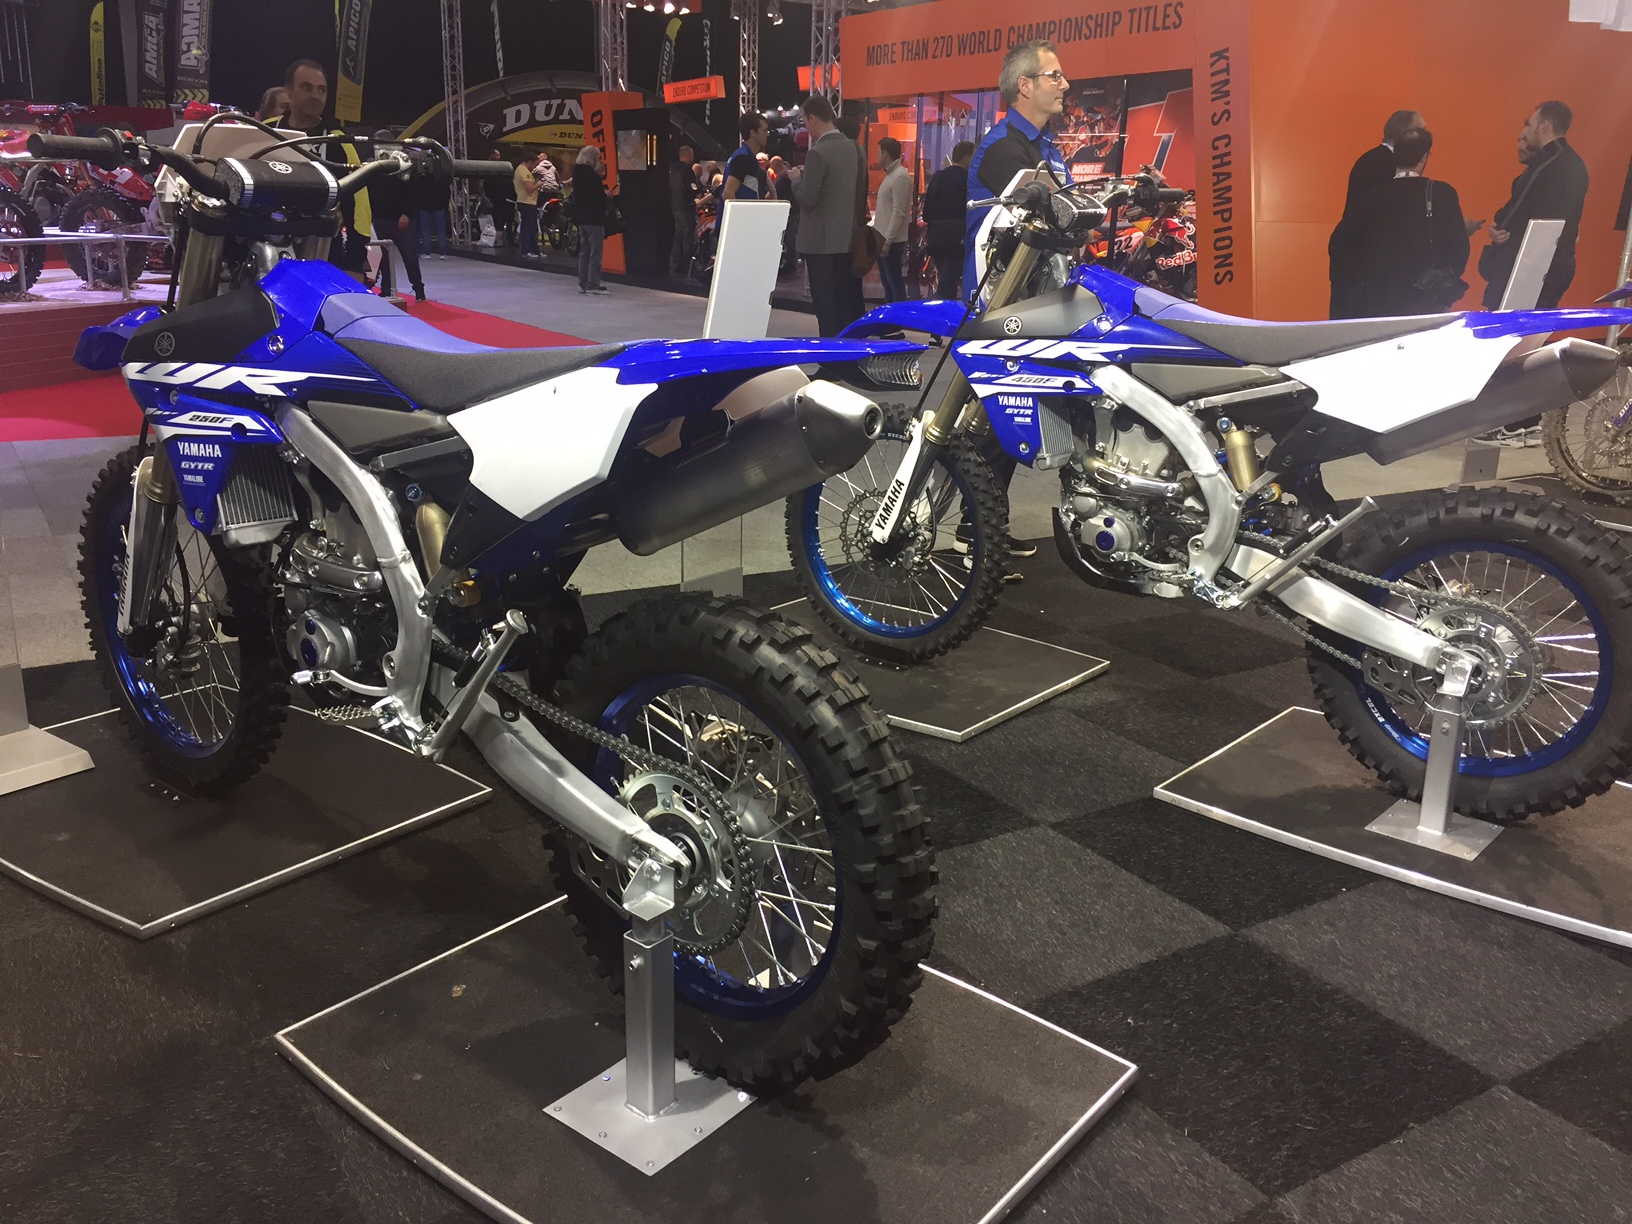 YAMAHA DEBUT THEIR 2018 WR250F AND WR450F AT THE DIRT BIKE